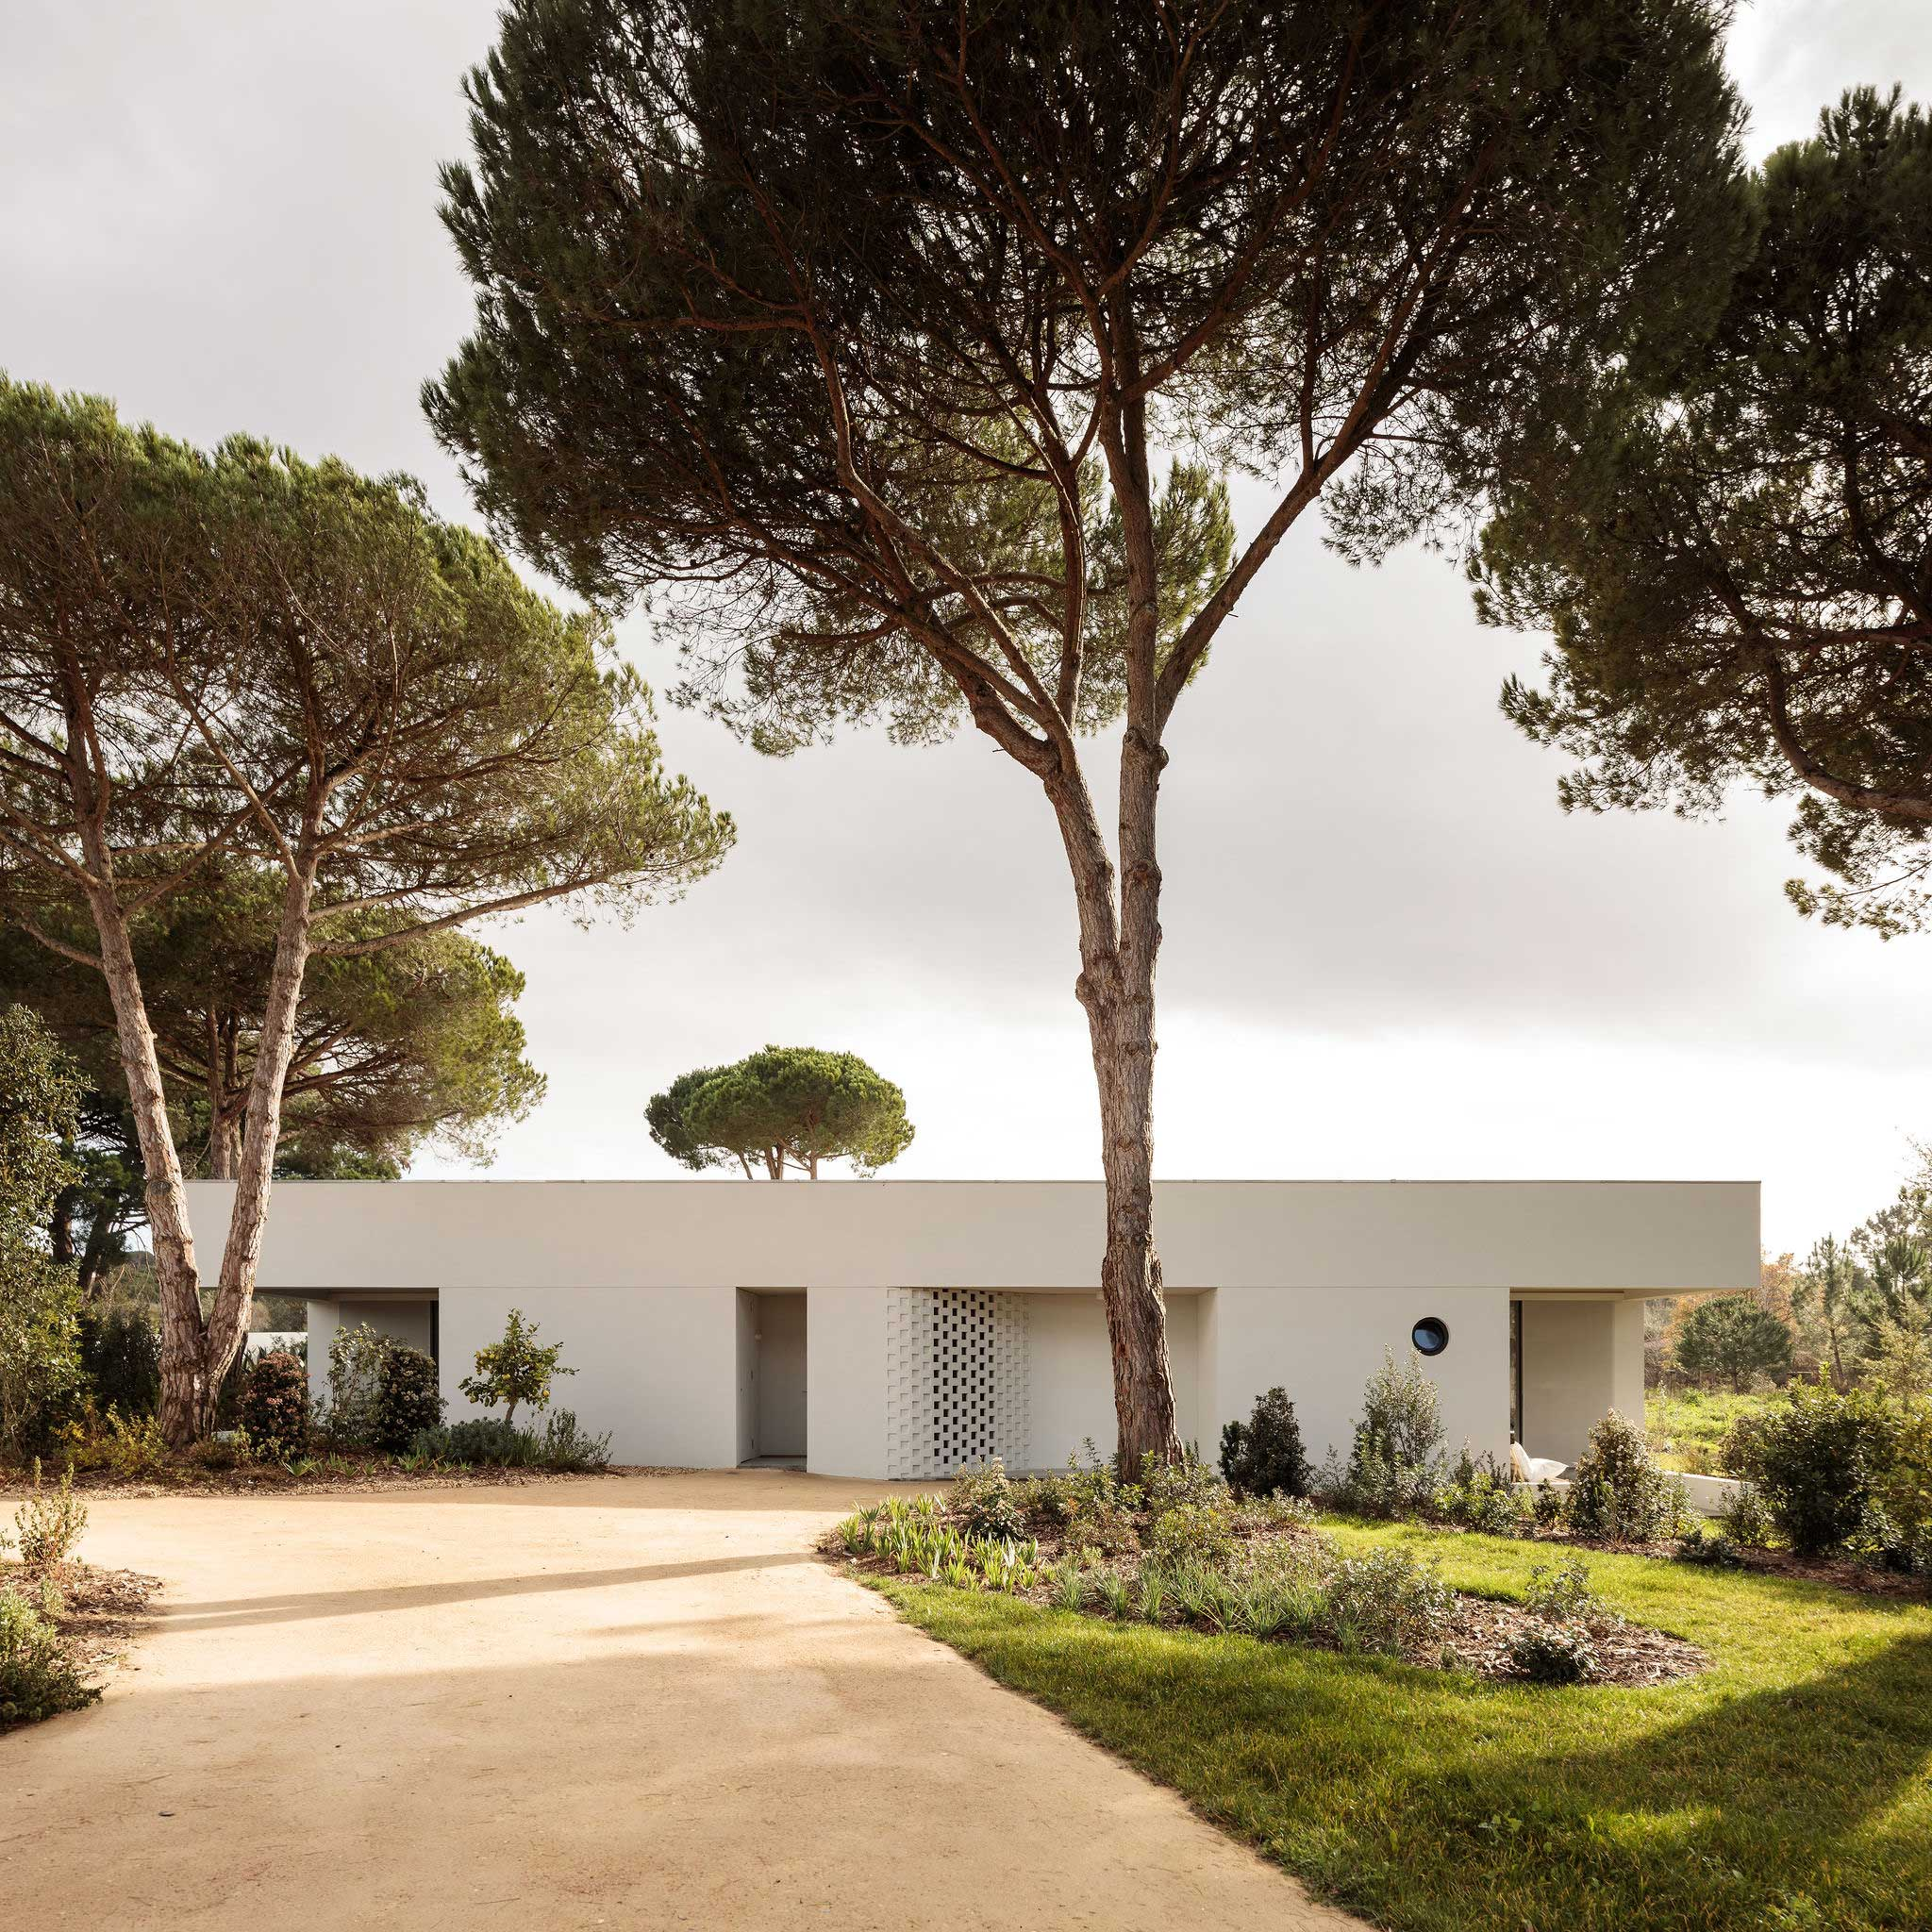 Casa Meco Holiday House in Meco, Portugal by Atelier Rua.